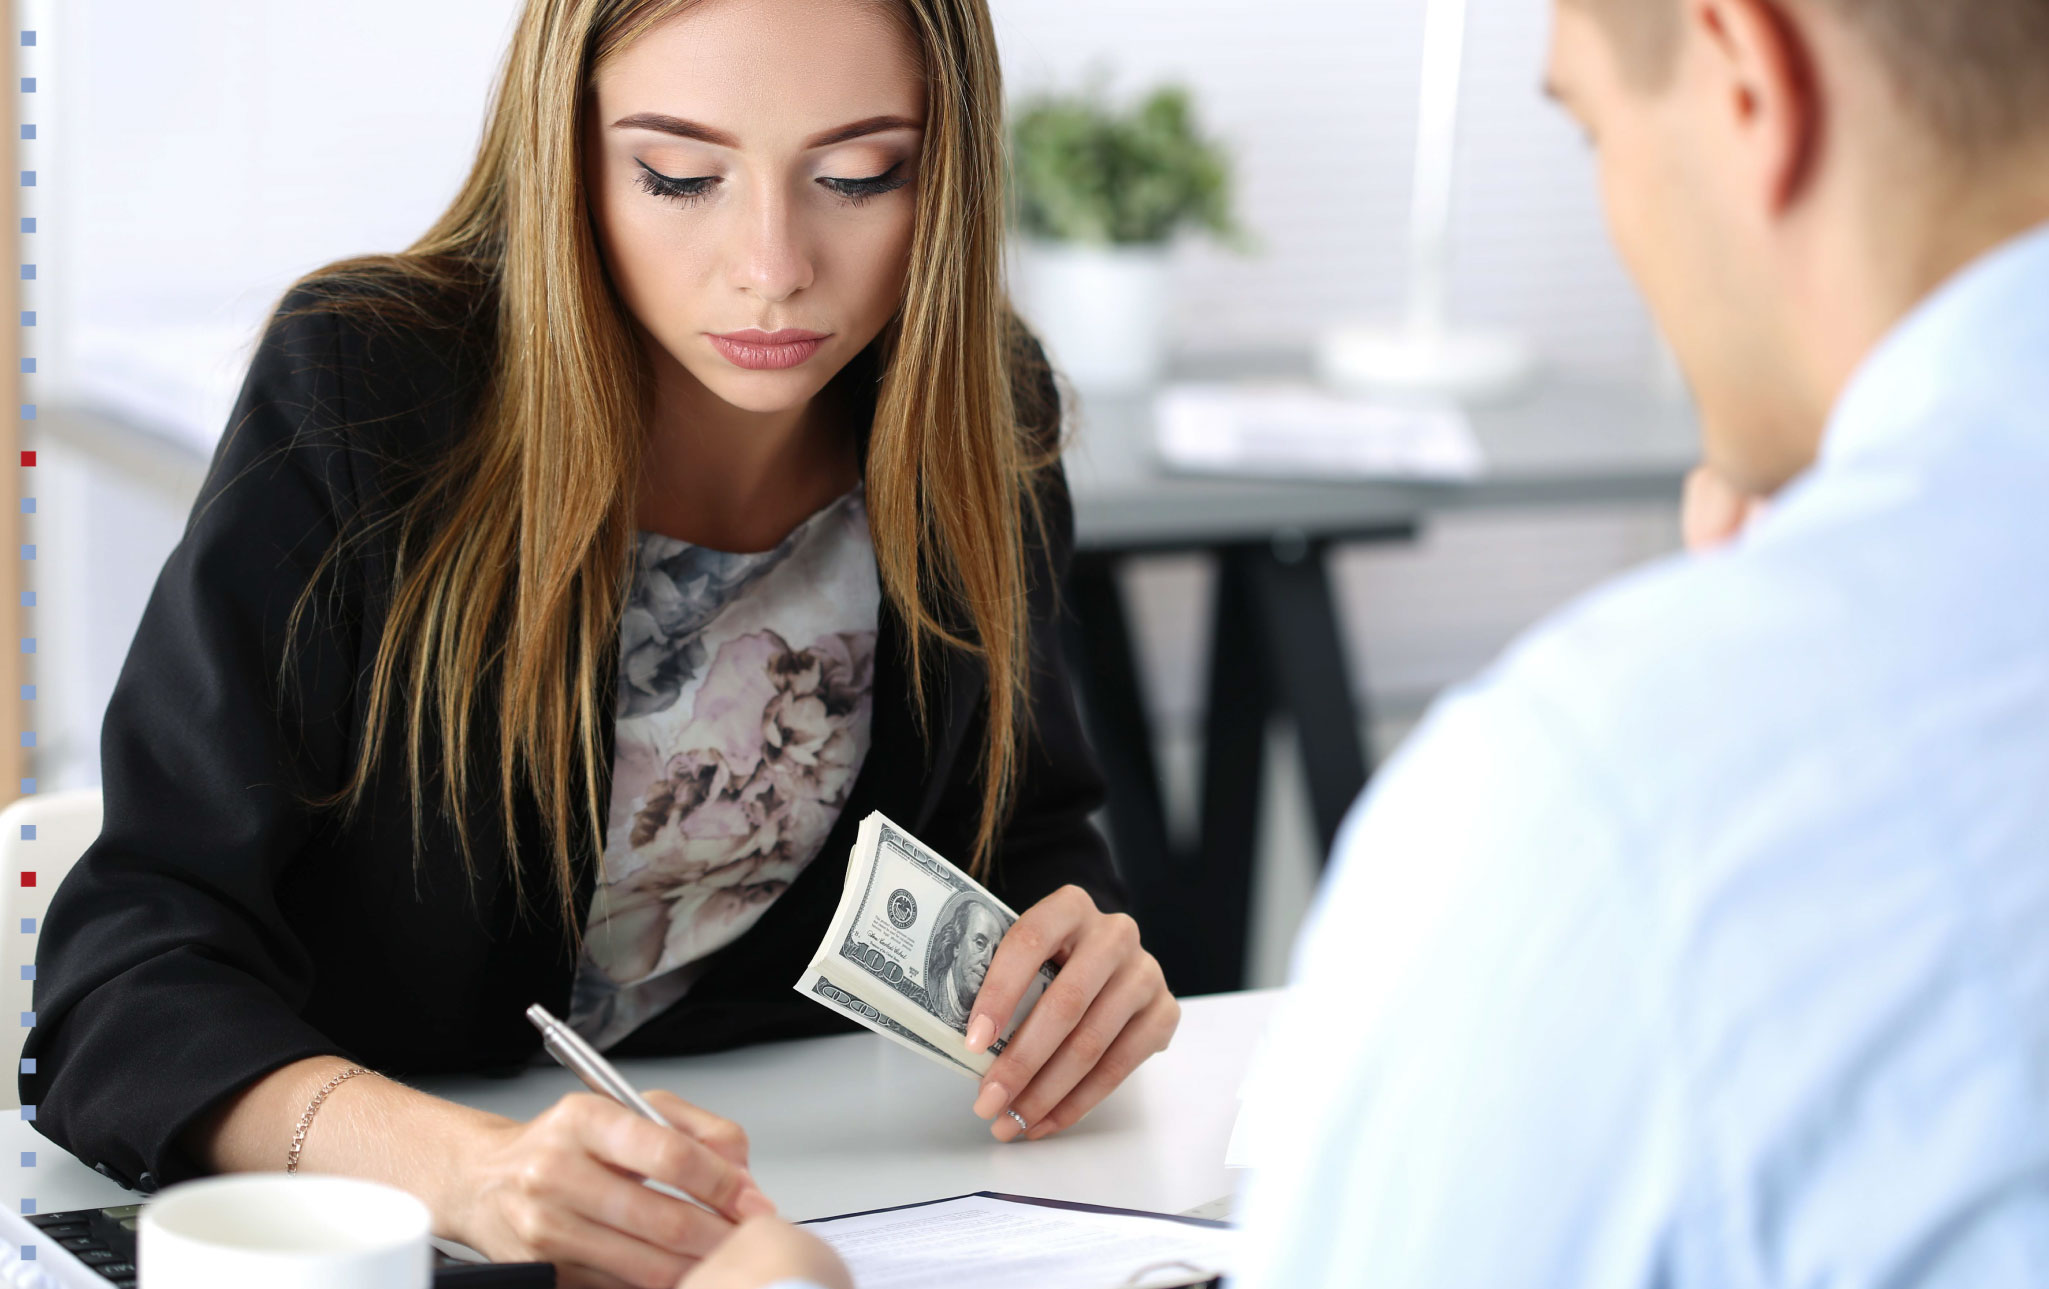 Reporting on the Gender Pay Gap in the UK